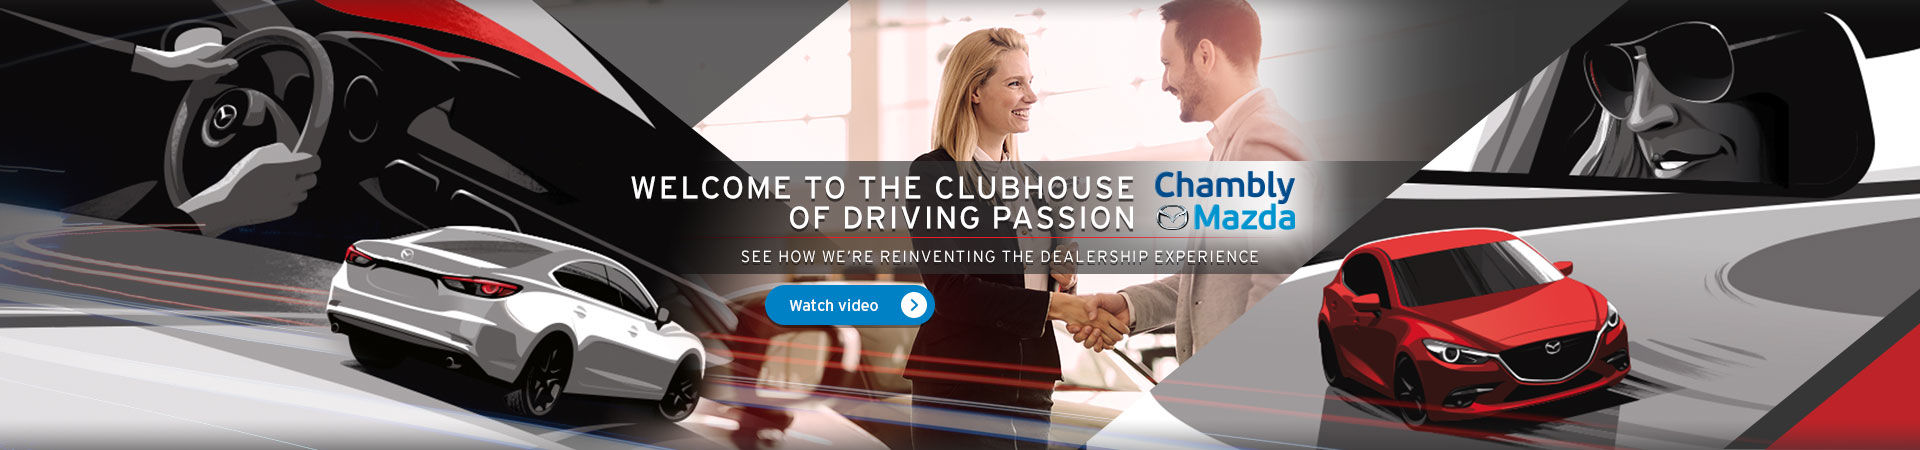 Welcome to the Clubhouse of Driving Passion